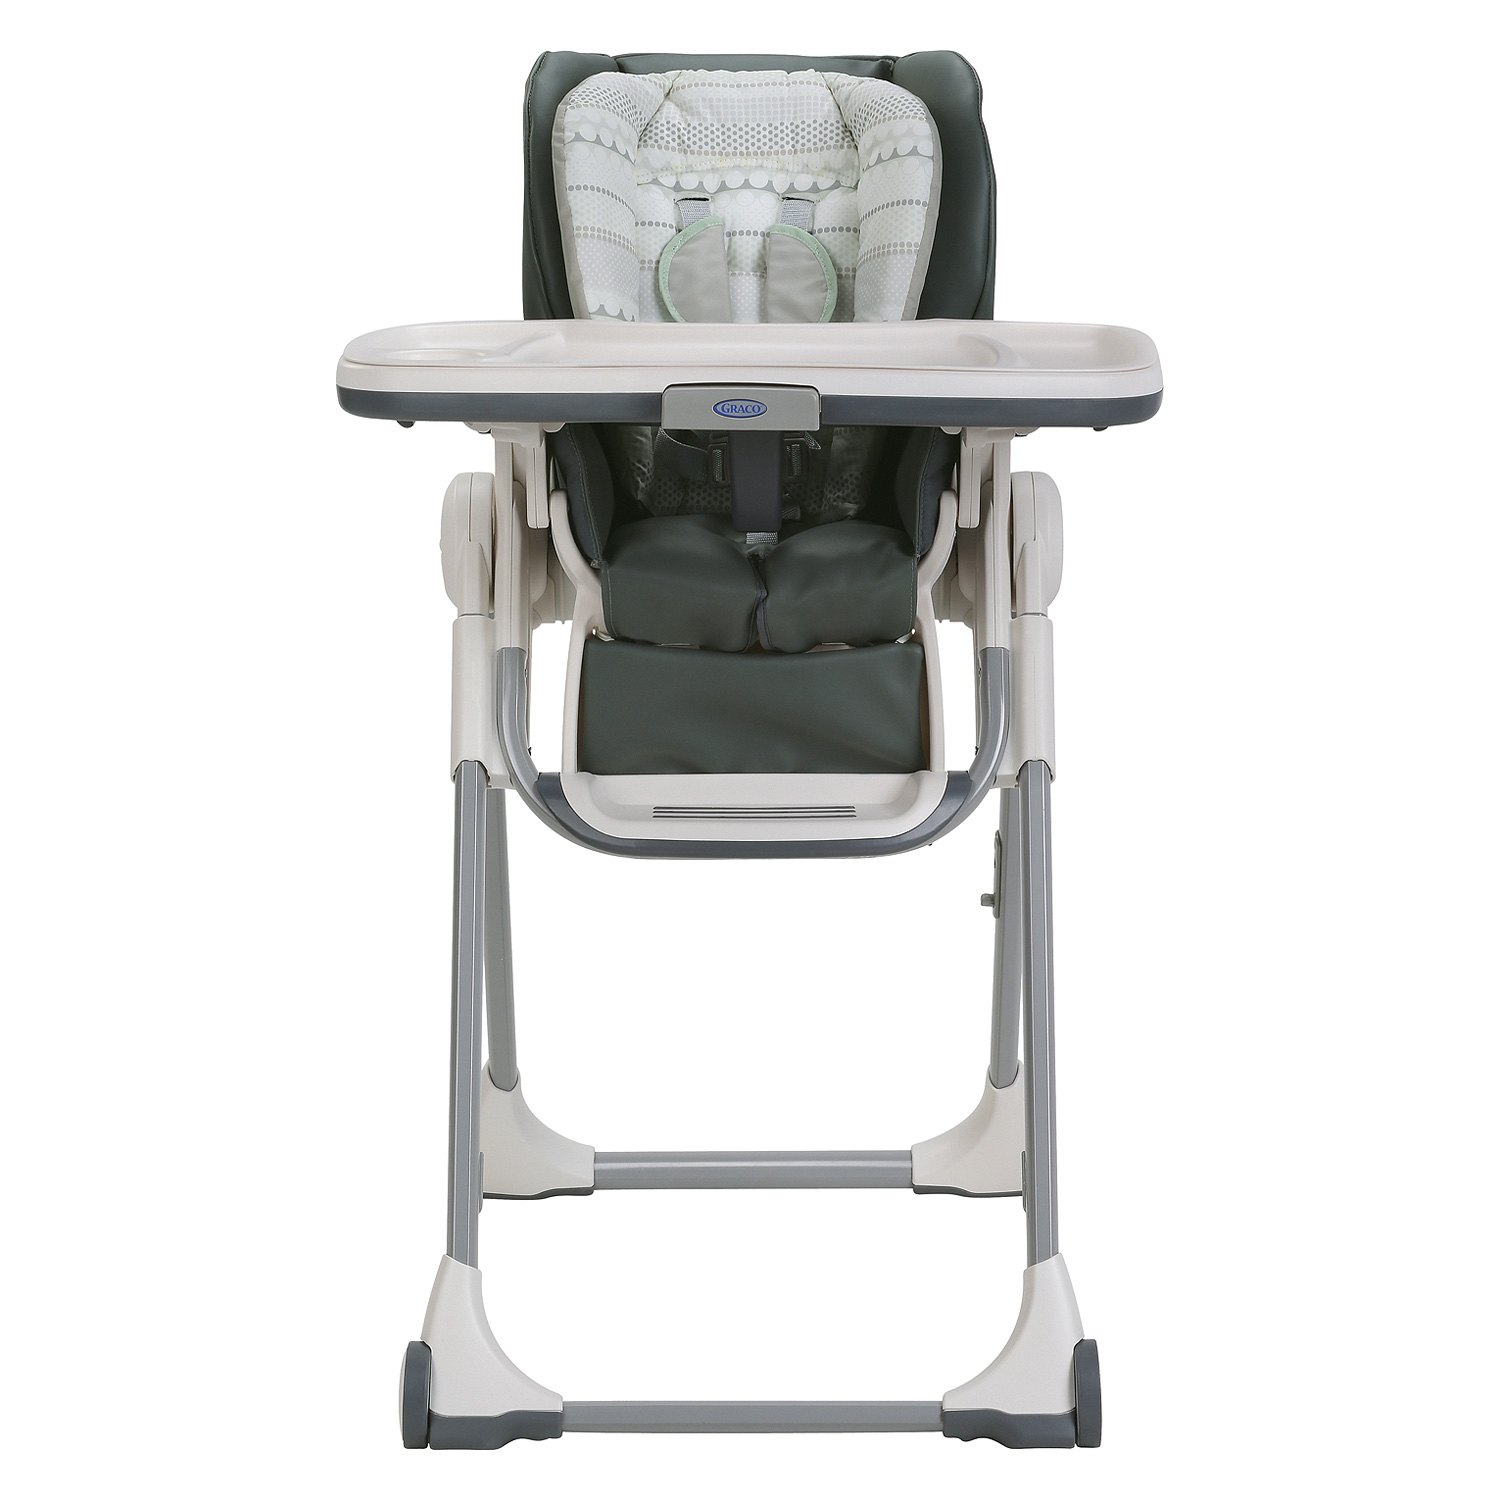 graco duodiner lx 3 in 1 highchair instructions pvc adirondack chairs best of high chair rtty1